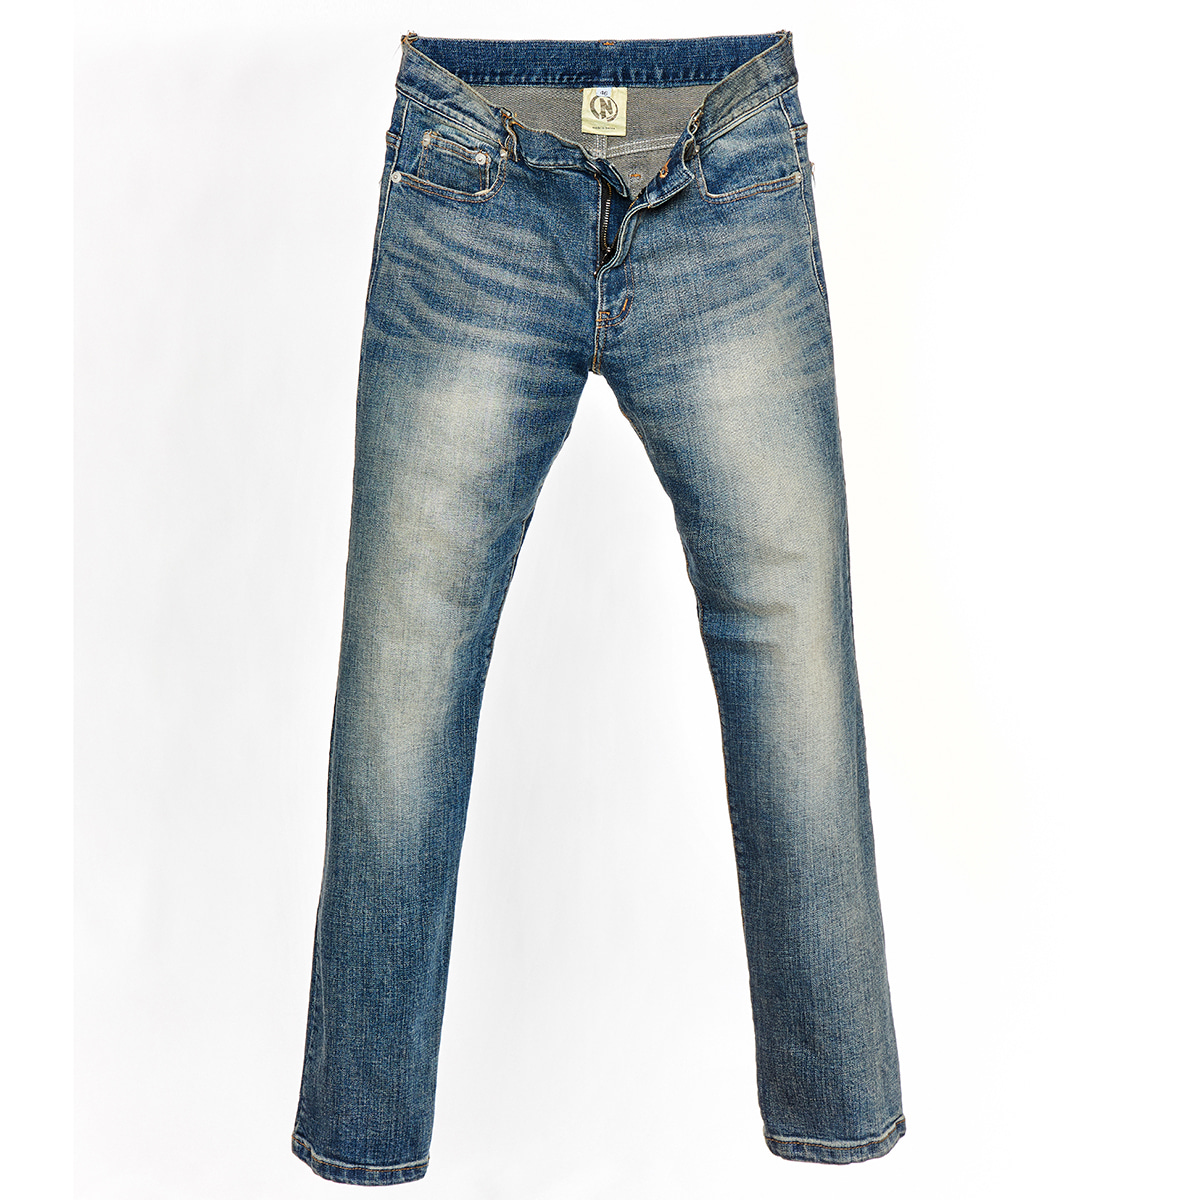 "NIVENS - HUBRIS X NIVENS COLLABORATION ""STONE WASH JEANS"""